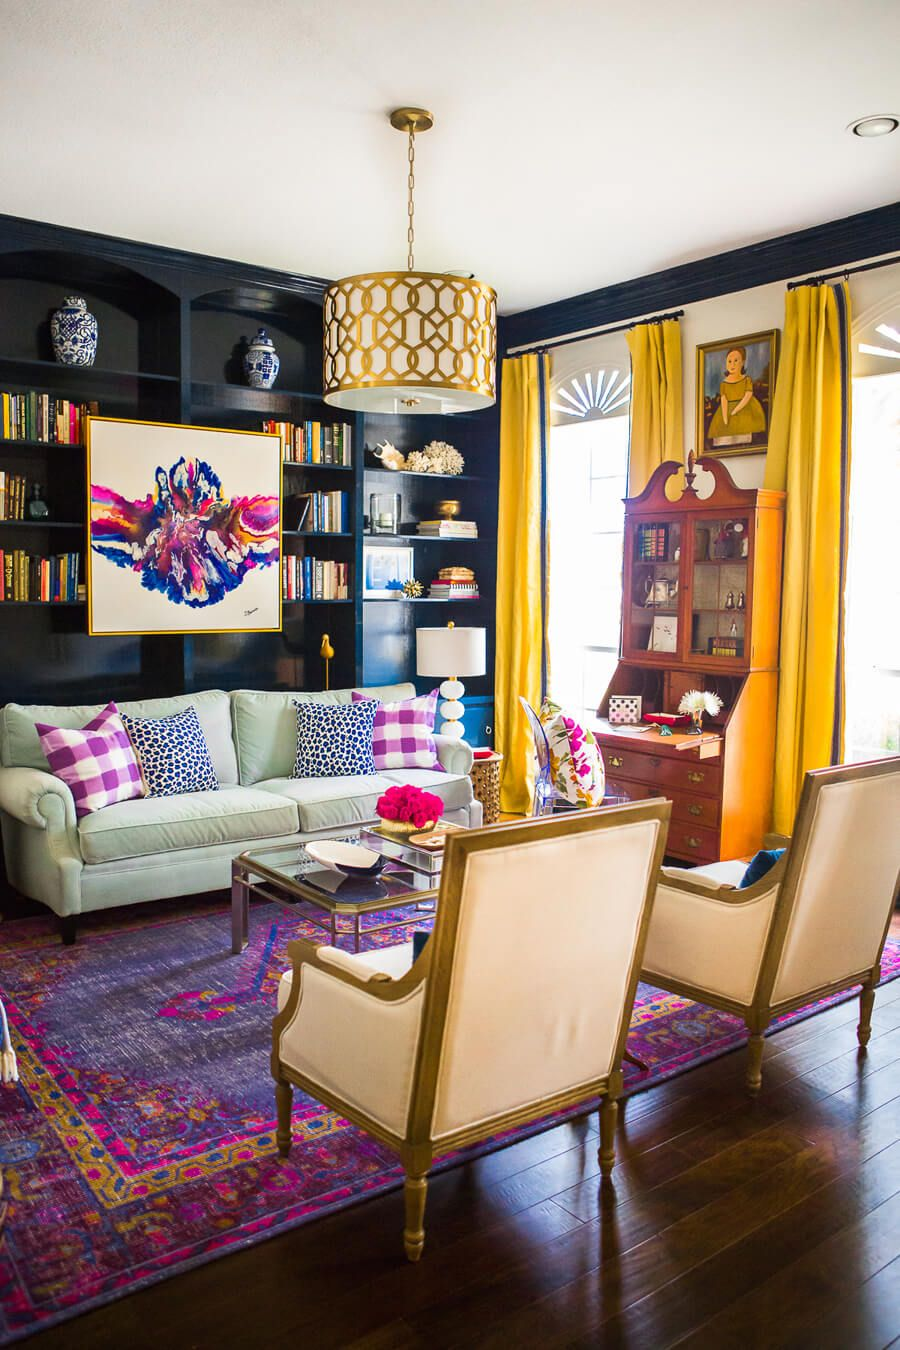 In This Wildly Colorful Living Room Worked With Designer To Create A Glam Jewel Toned Look While Incorporating An Antique Secretary Desk Family